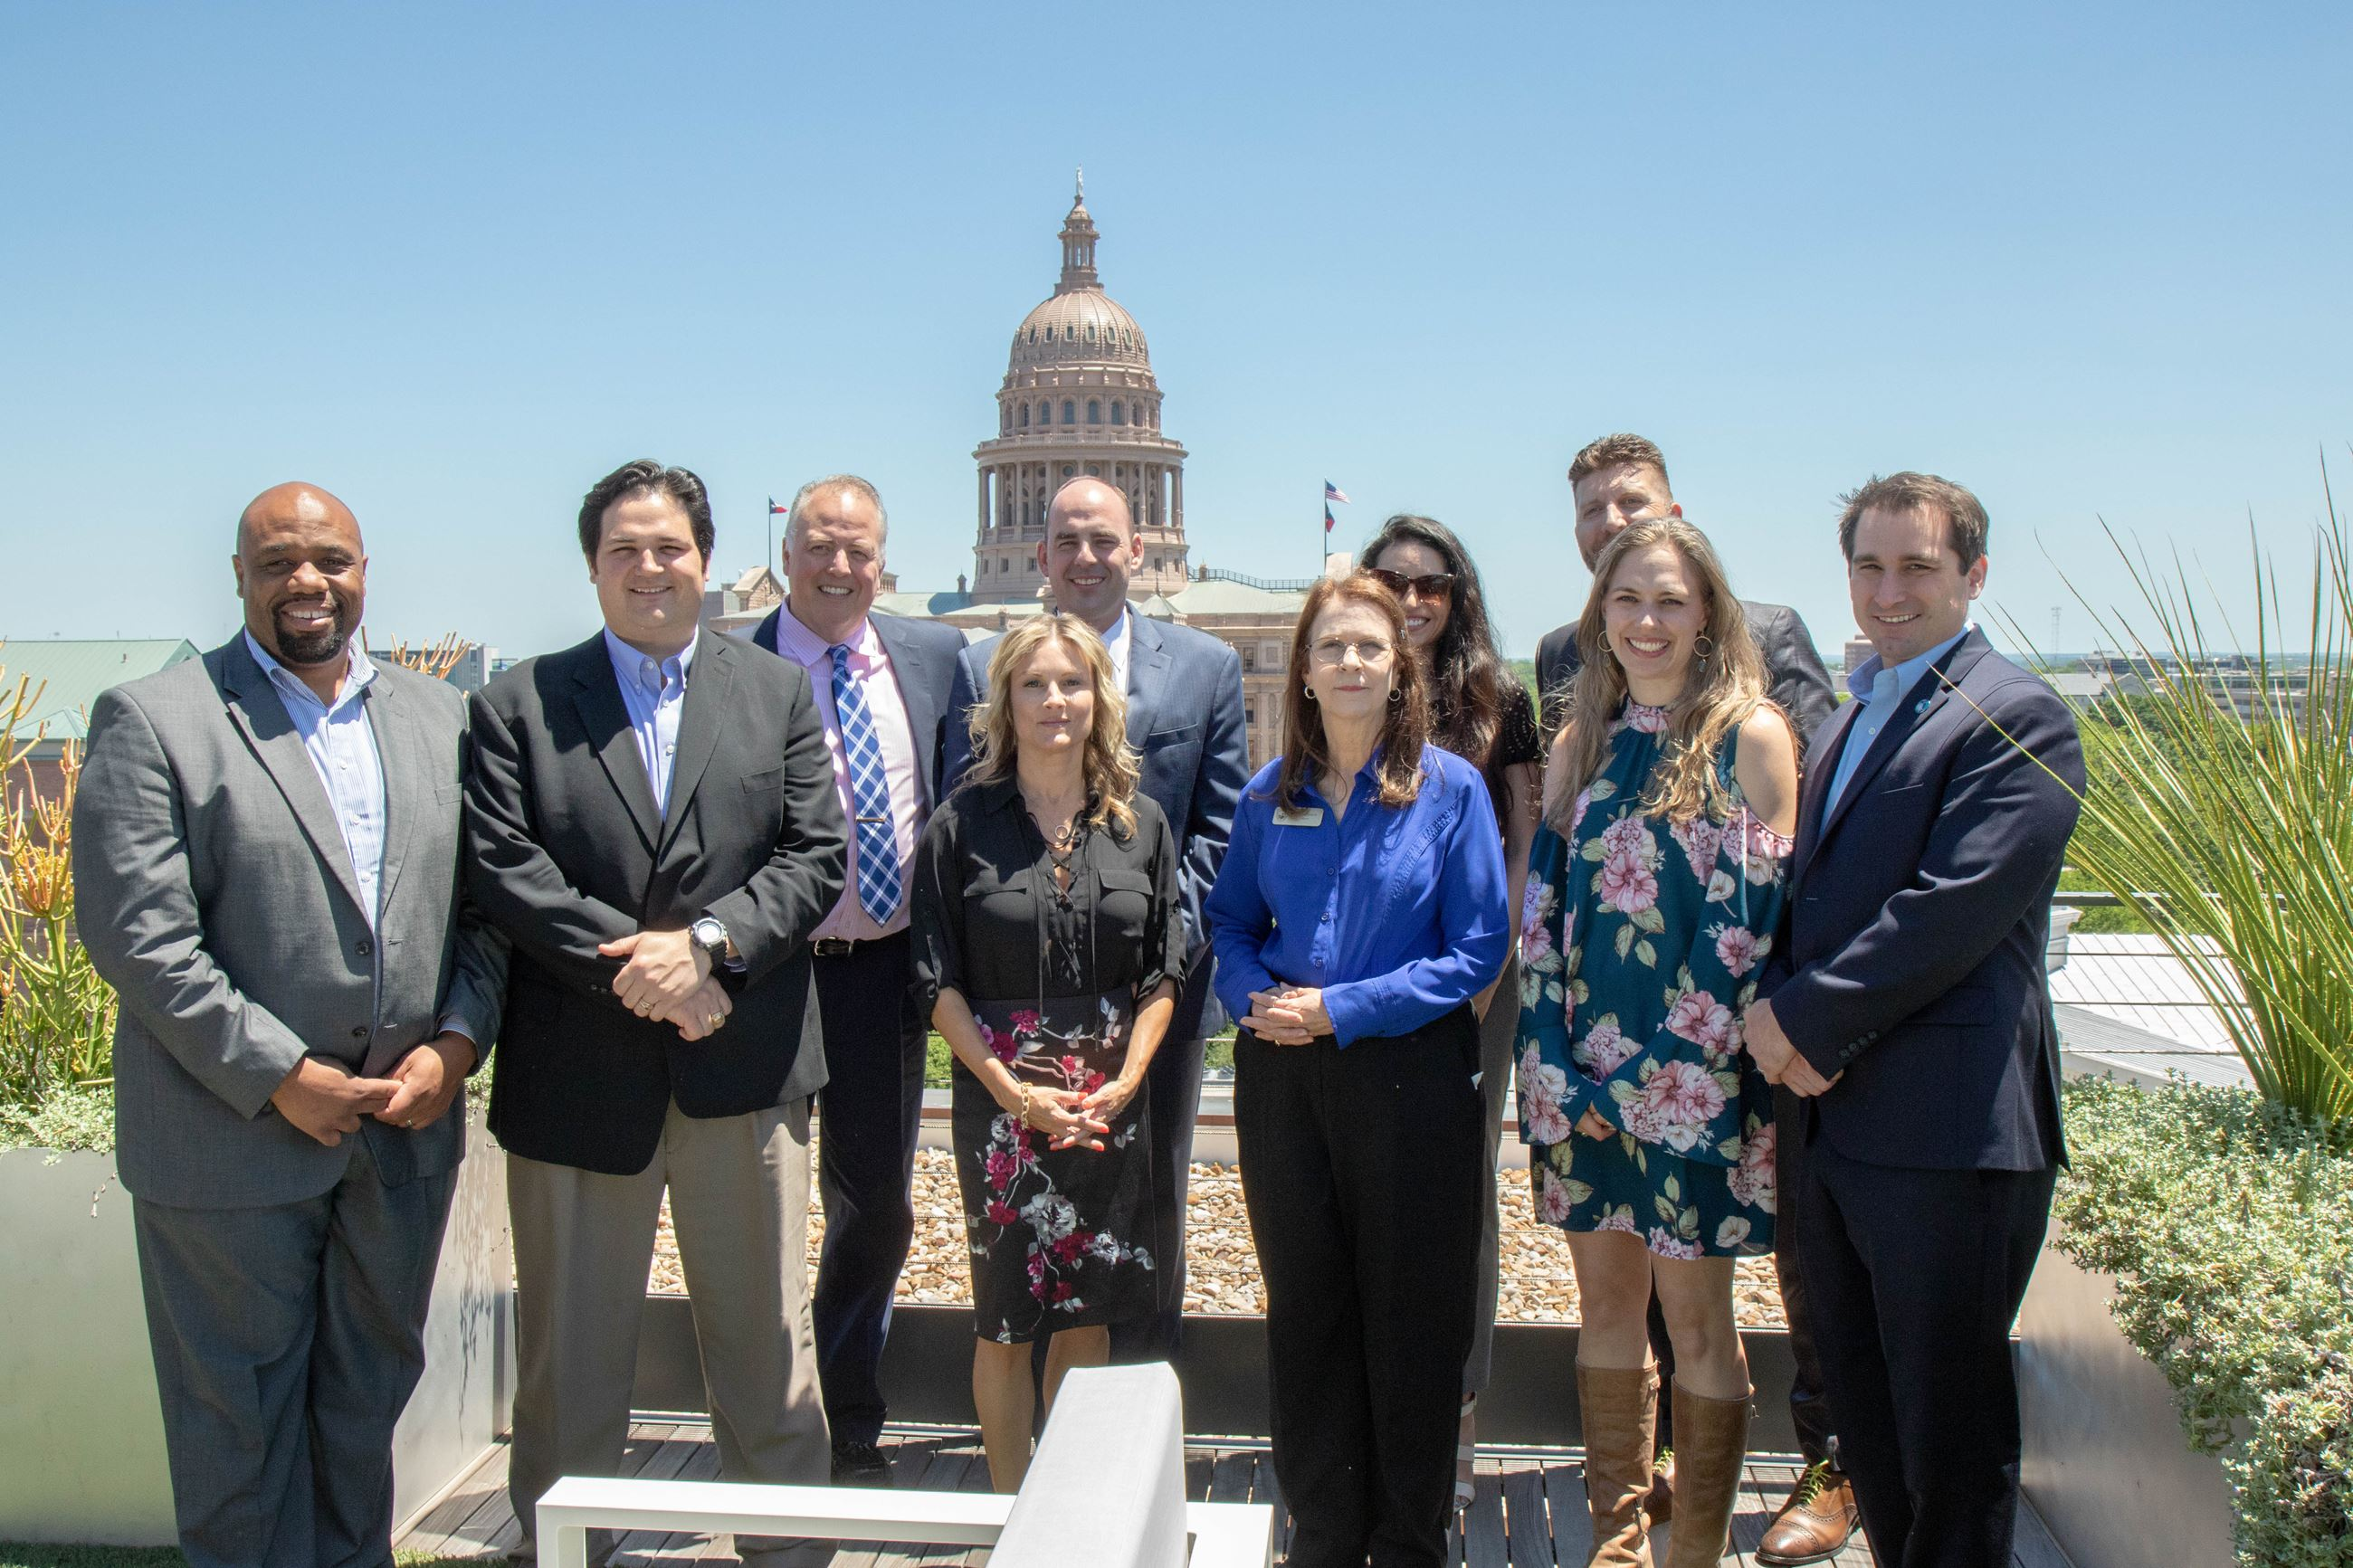 Members of City Staff, City Council, and the Chamber of Commerce pose in a group shot on a roof top